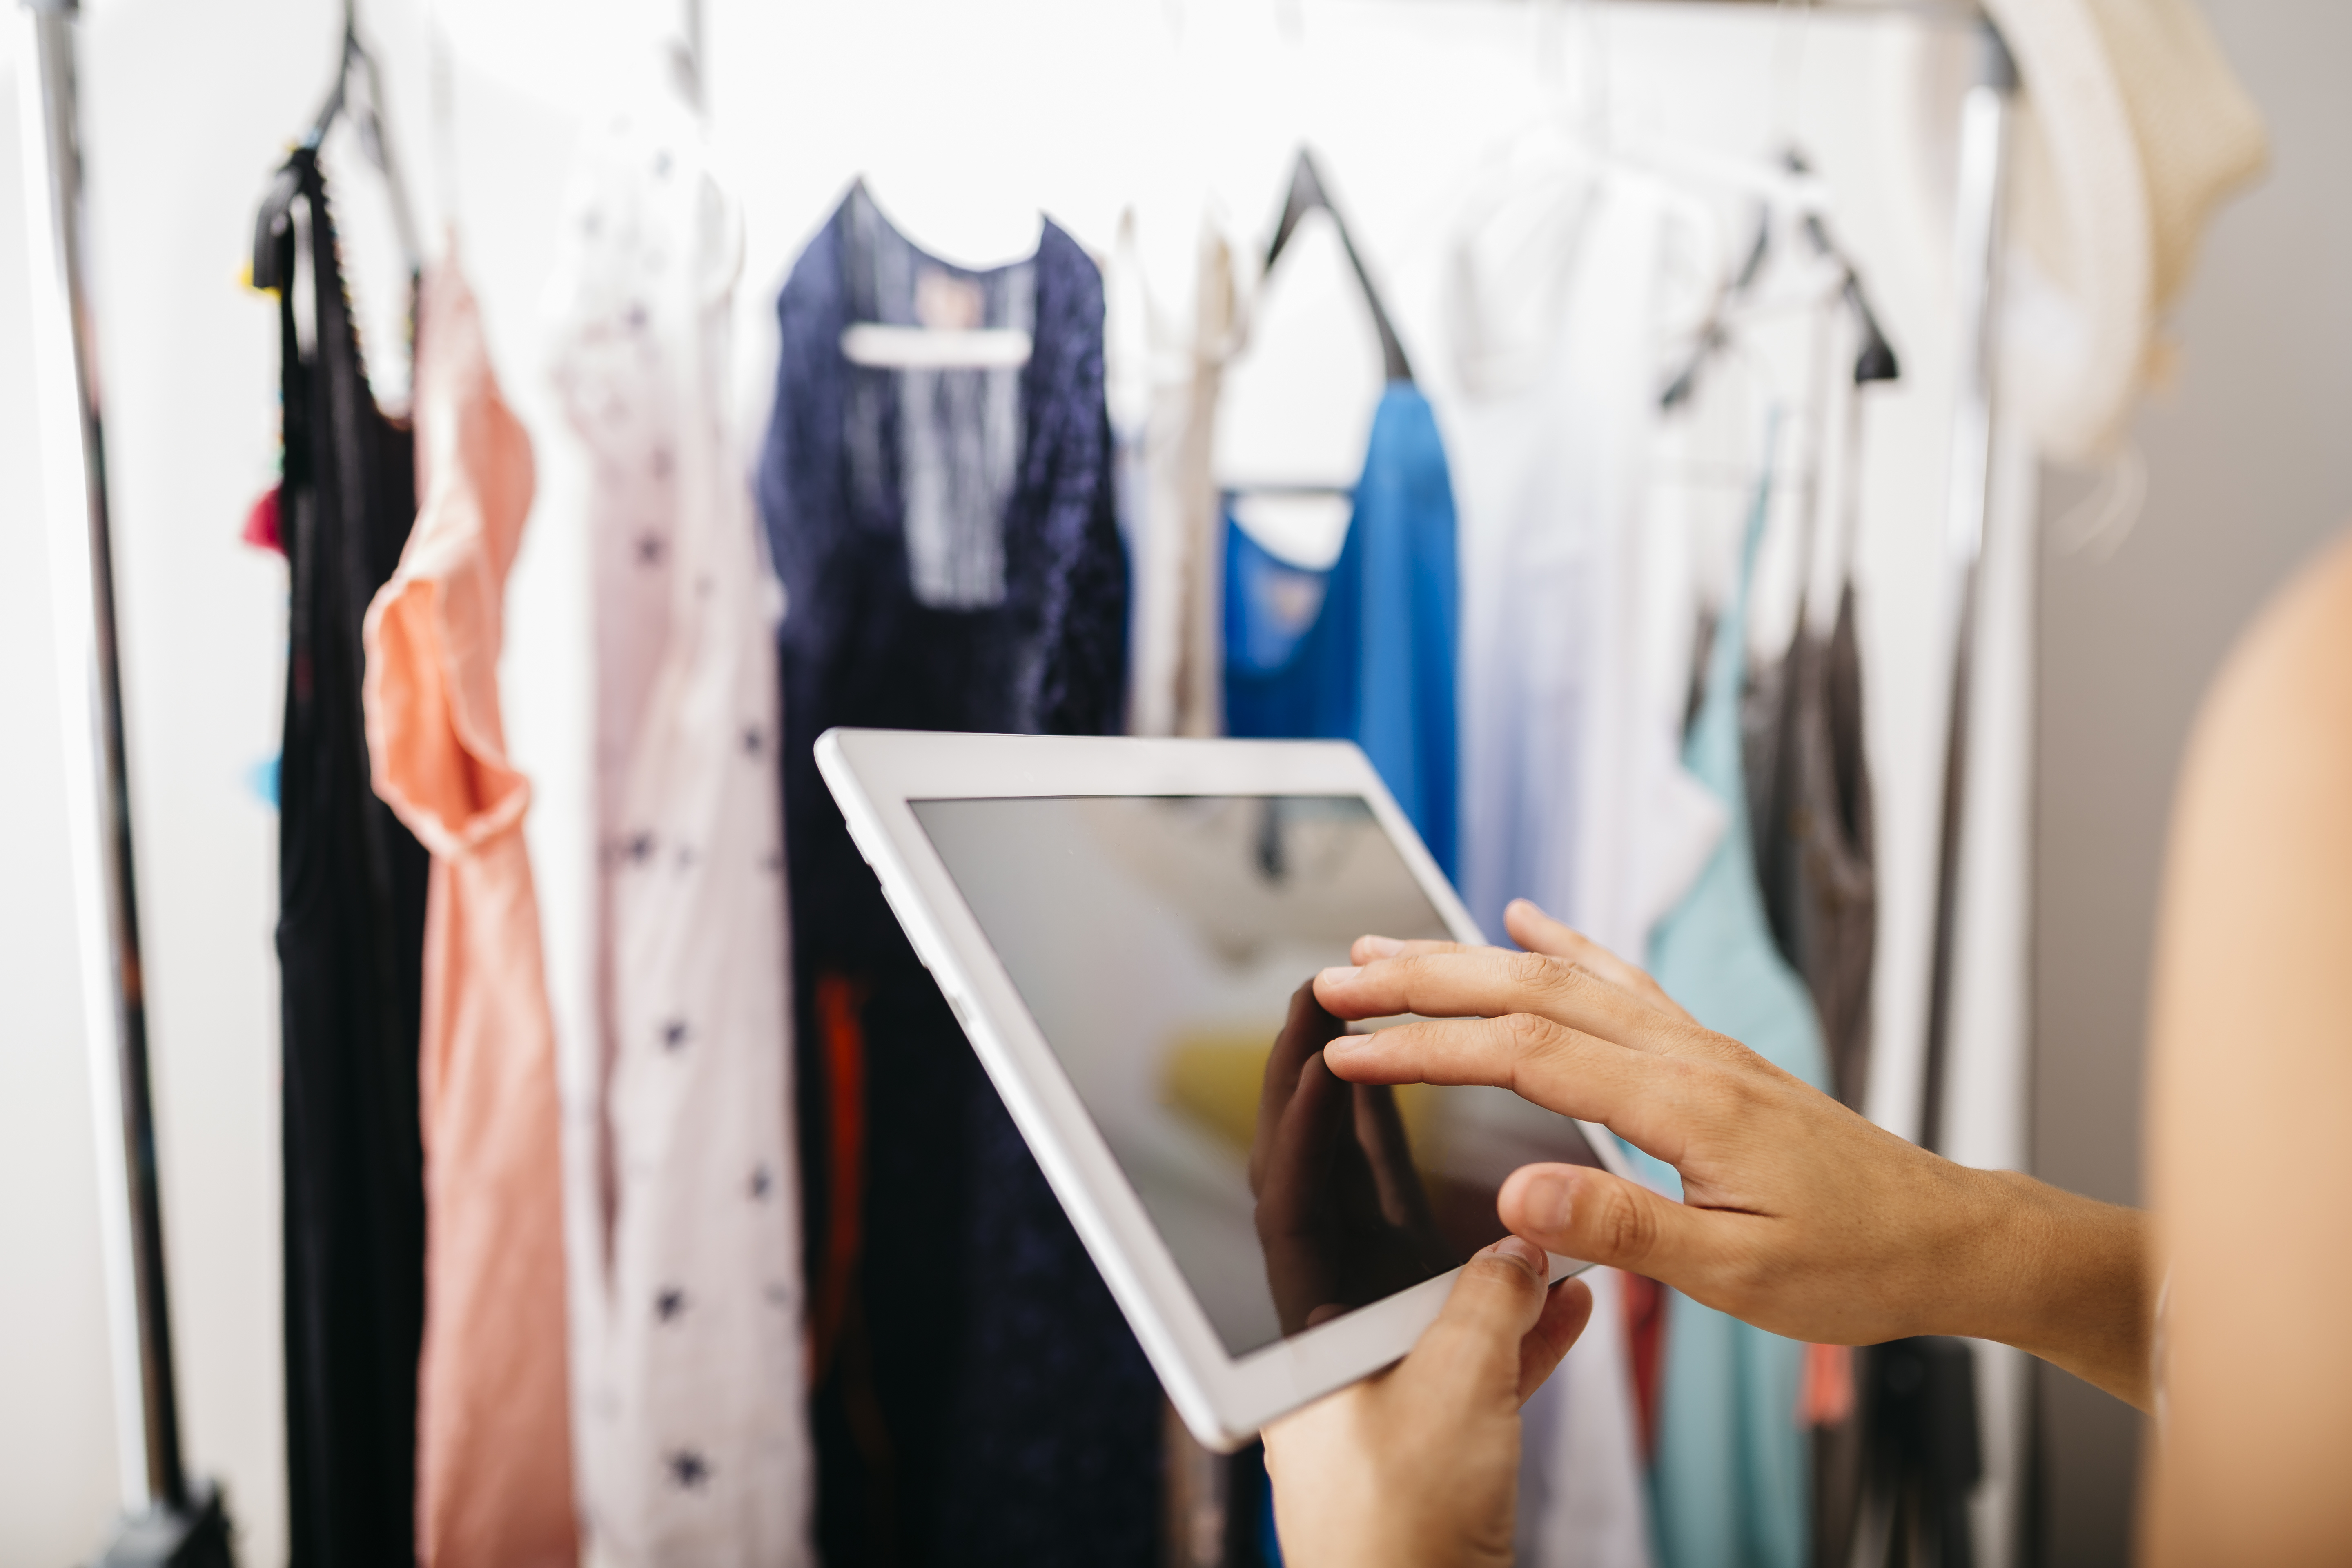 Woman holding tablet in front of closet full of clothes